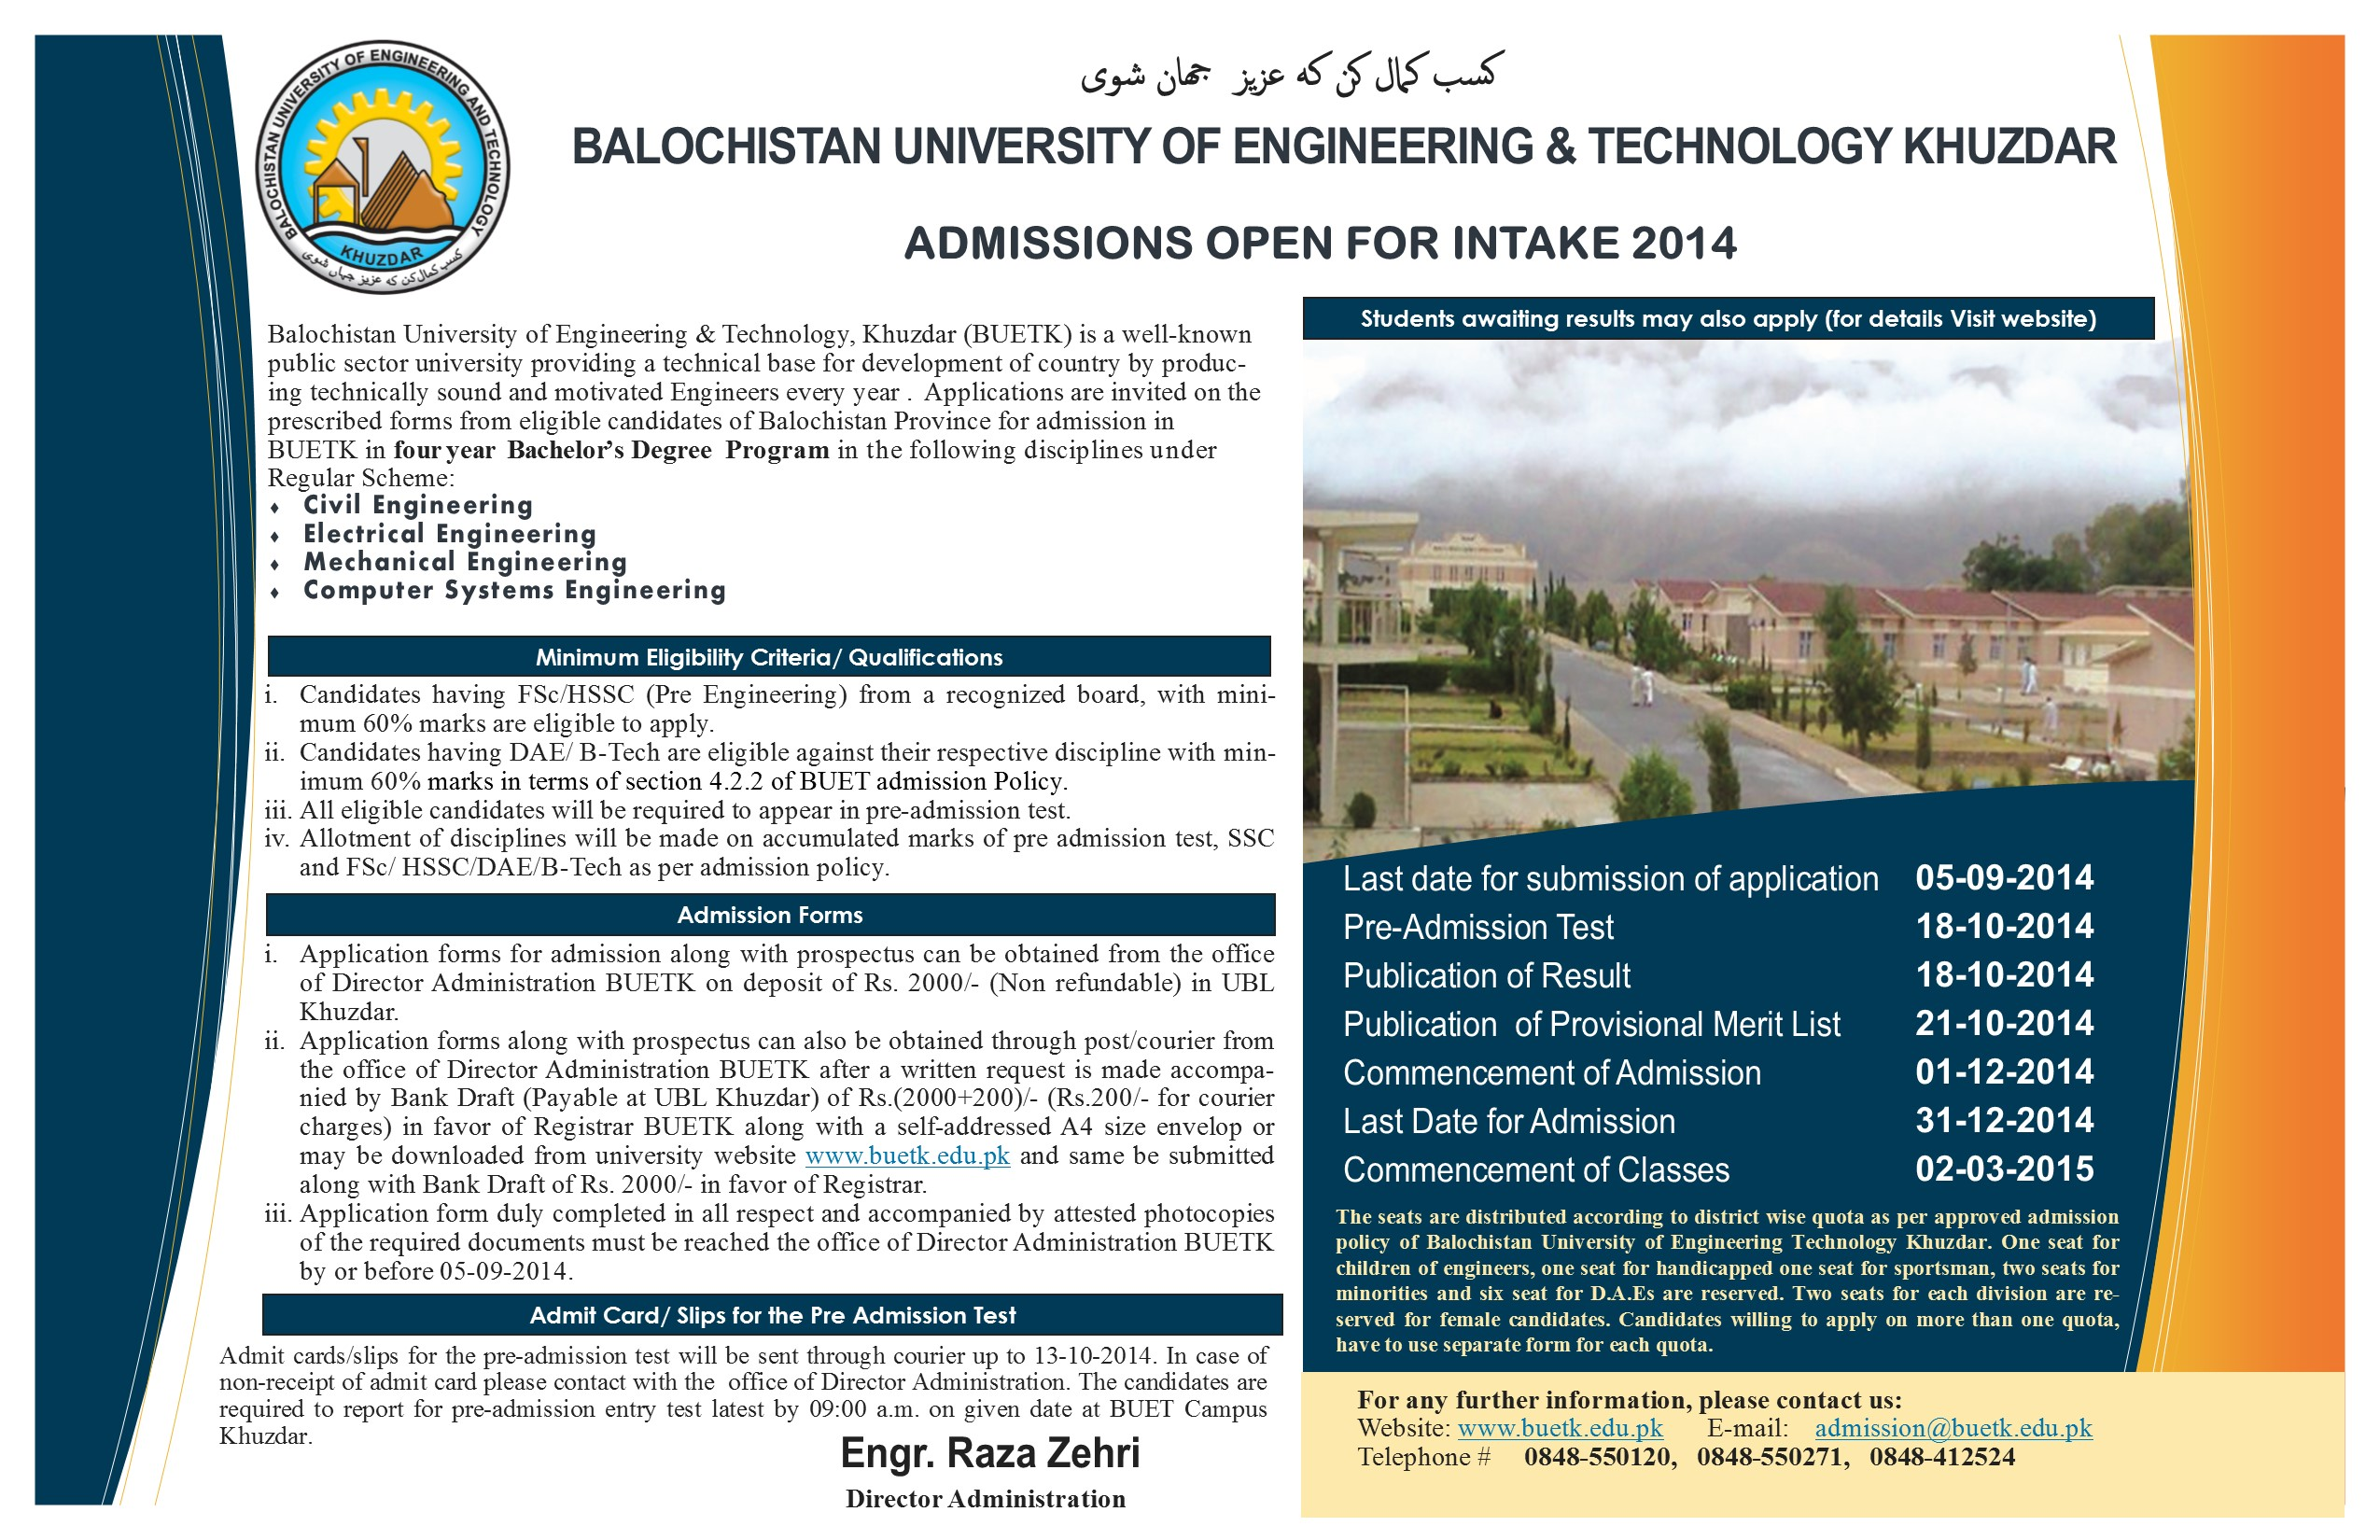 Balochistan University of Engineering BUET Khuzdar Admission 2014-2015